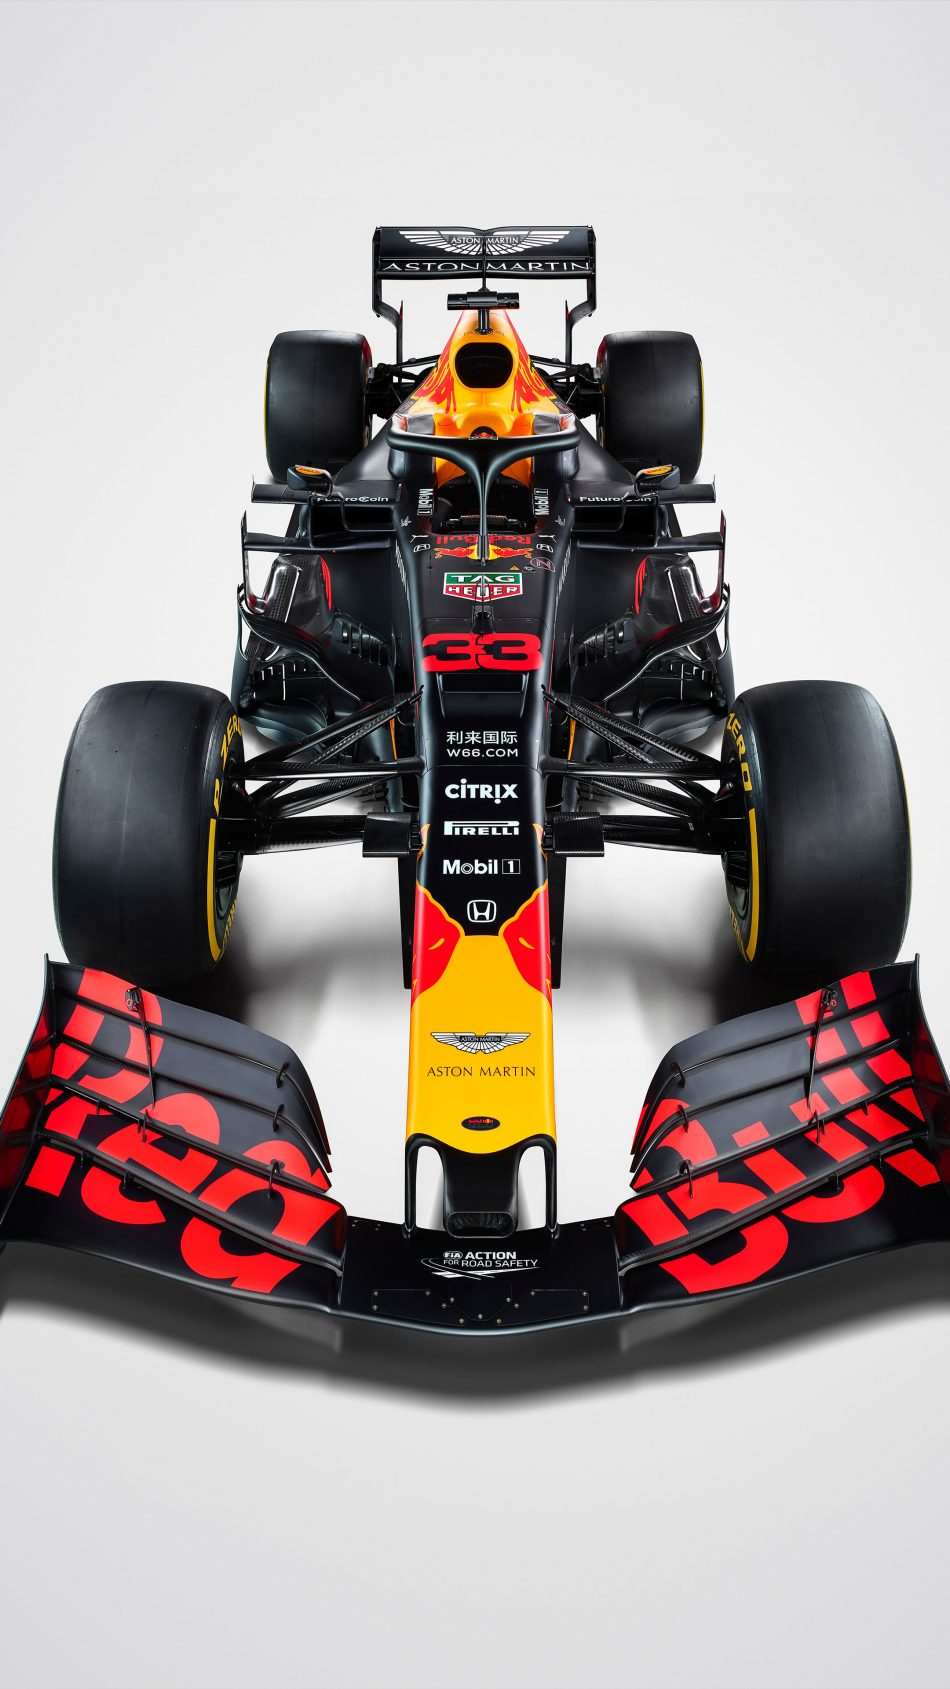 Download Red Bull Rb15 F1 2019 Free Pure 4k Ultra Hd Mobile Wallpaper